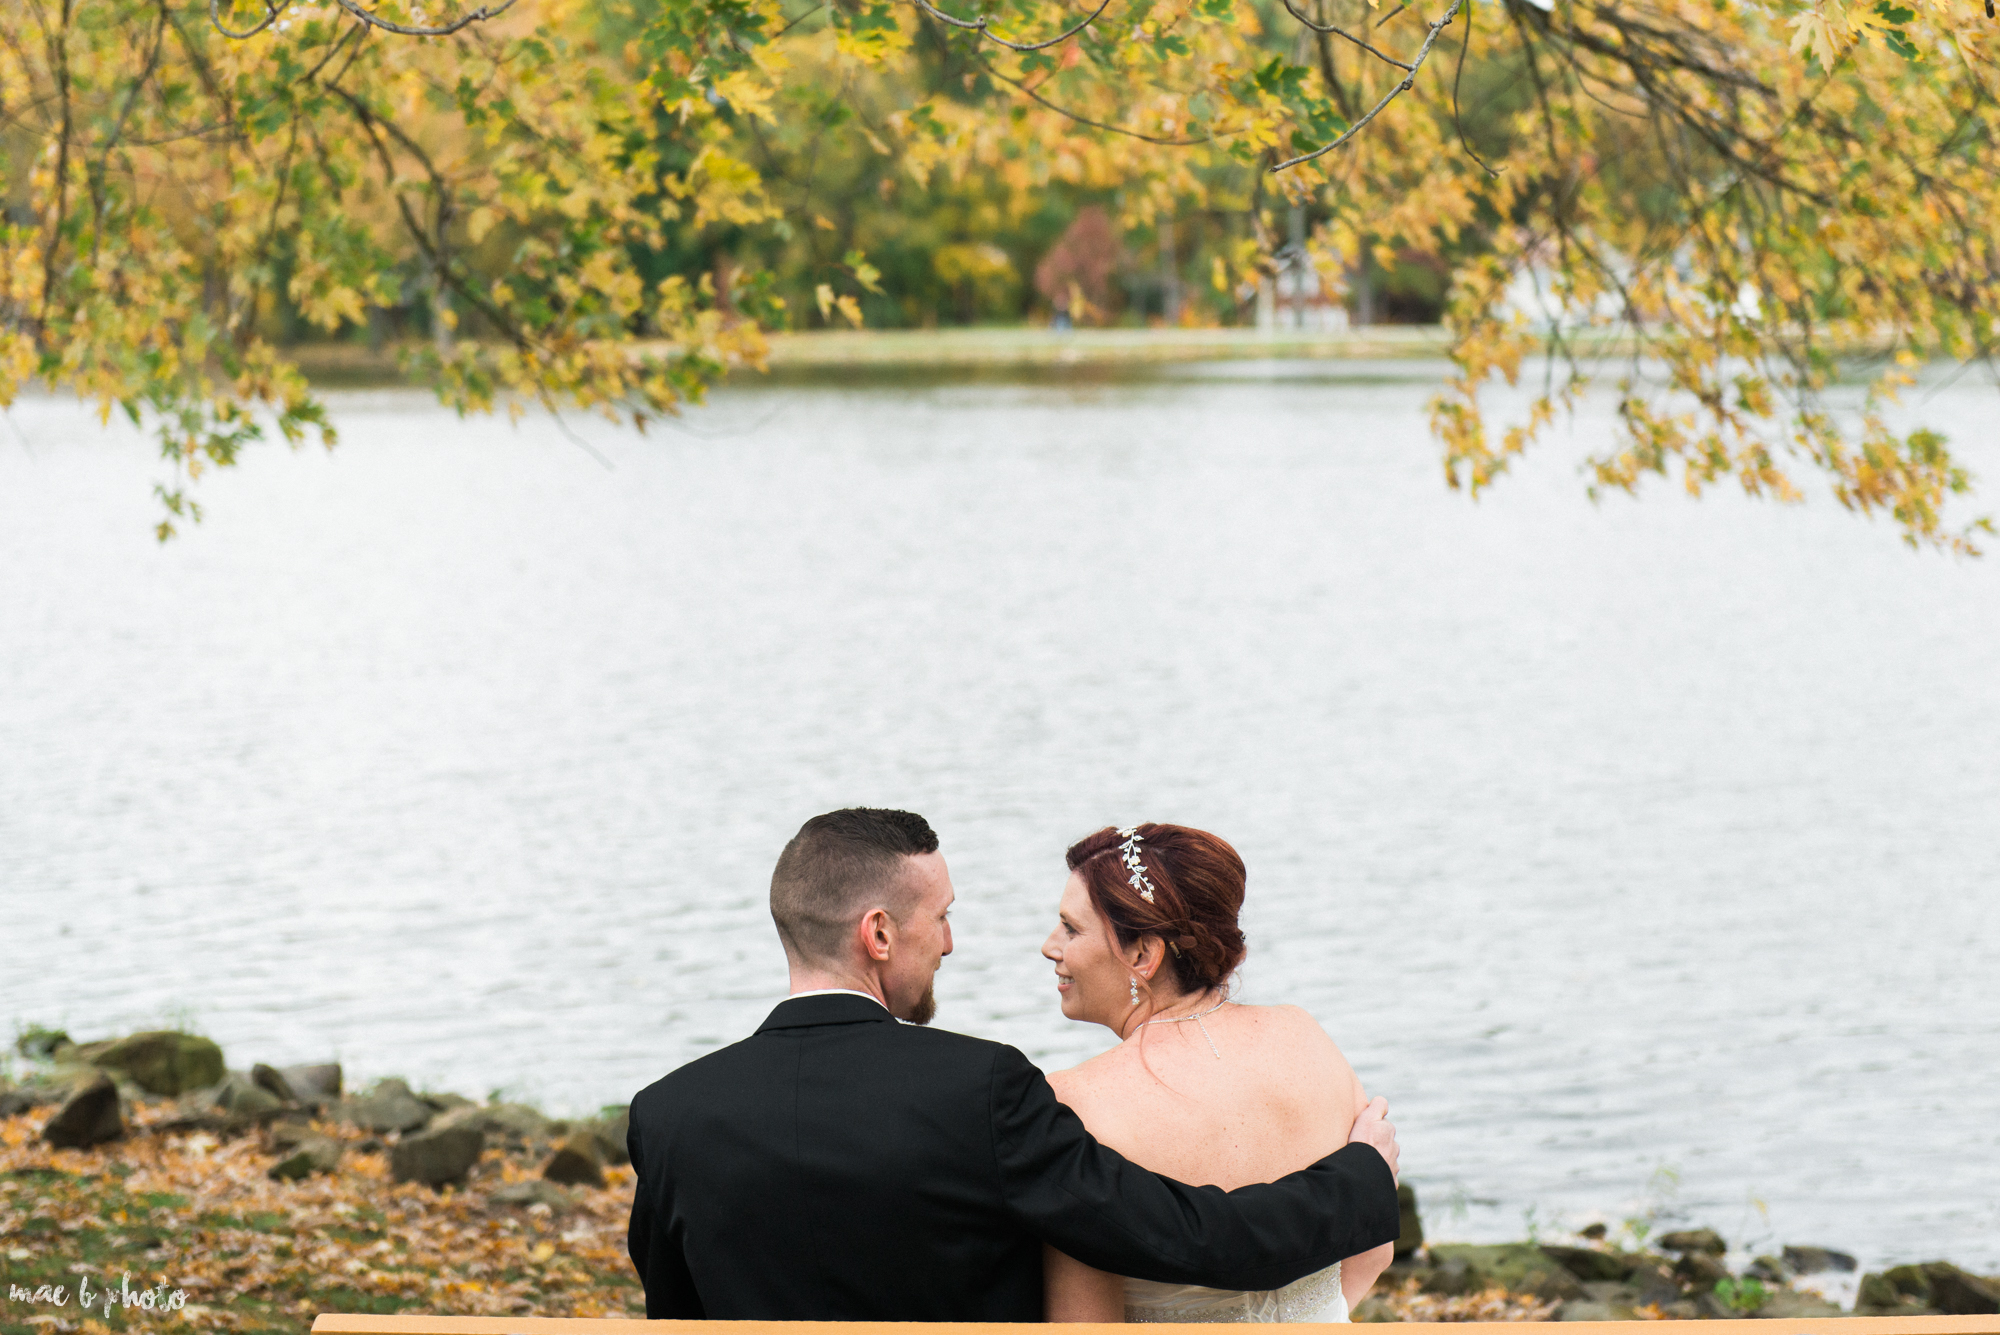 tracey and aaron's personal fall wedding at tiffany's banquet center in brookfield ohio-69.jpg